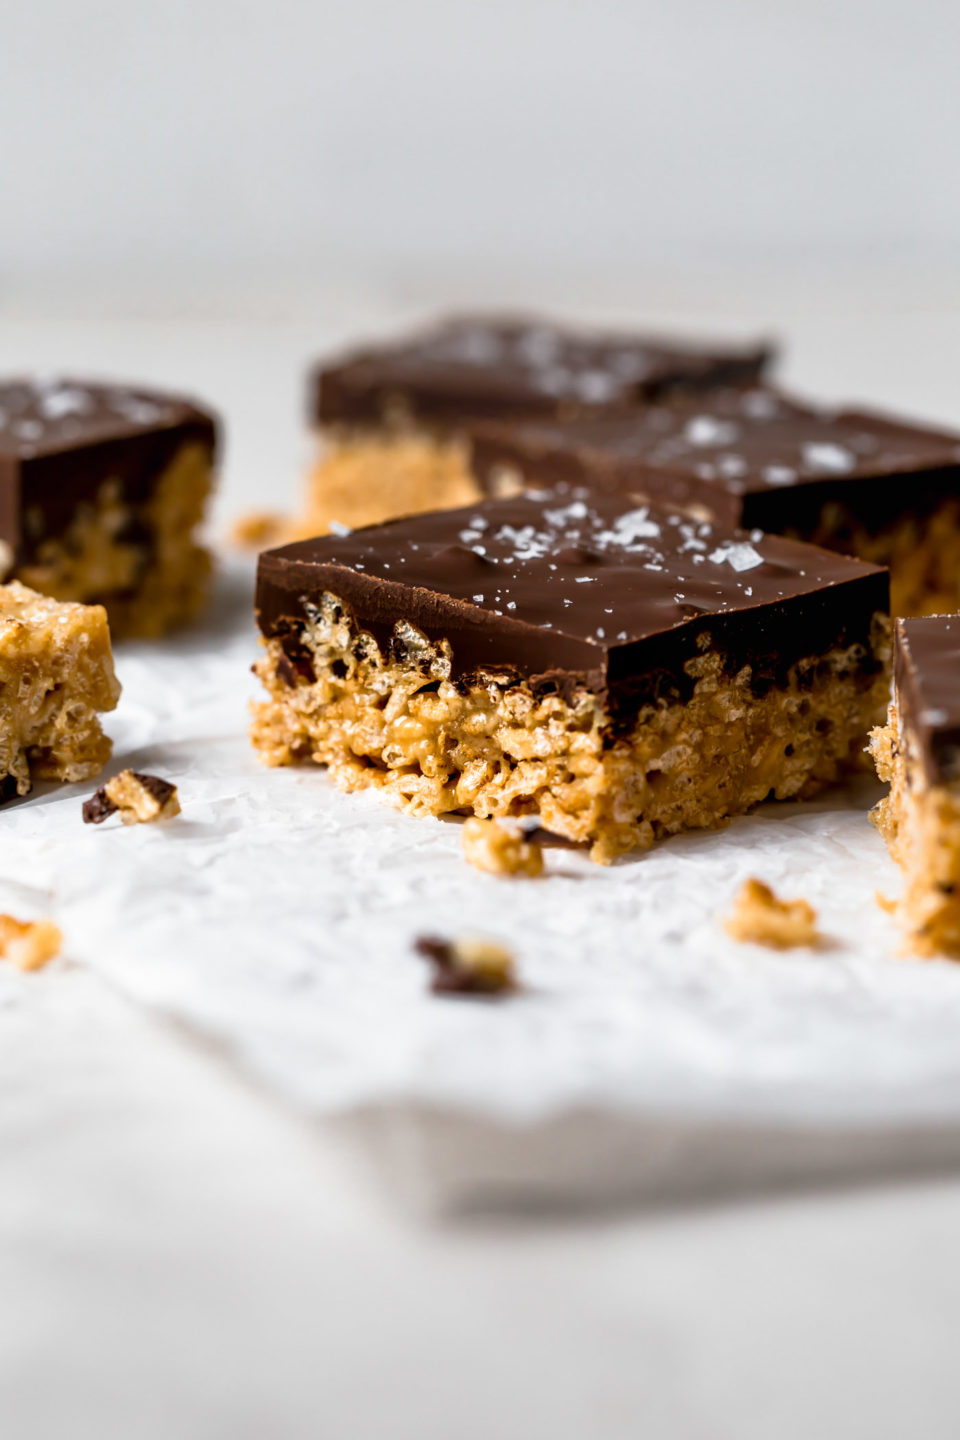 tahini scotcheroos are an update on the classic no-bake summertime dessert we all know & love! these tahini scotcheroos are an allergy-friendly (gluten free, nut free), easy to make treat & they're perfect for feeding a crowd! #playswellwithbutter #scotcheroos #scotcheroosrecipe #dessert #nobakedessert #nobakebars #allergyfriendly #glutenfreedessert #nutfreedessert